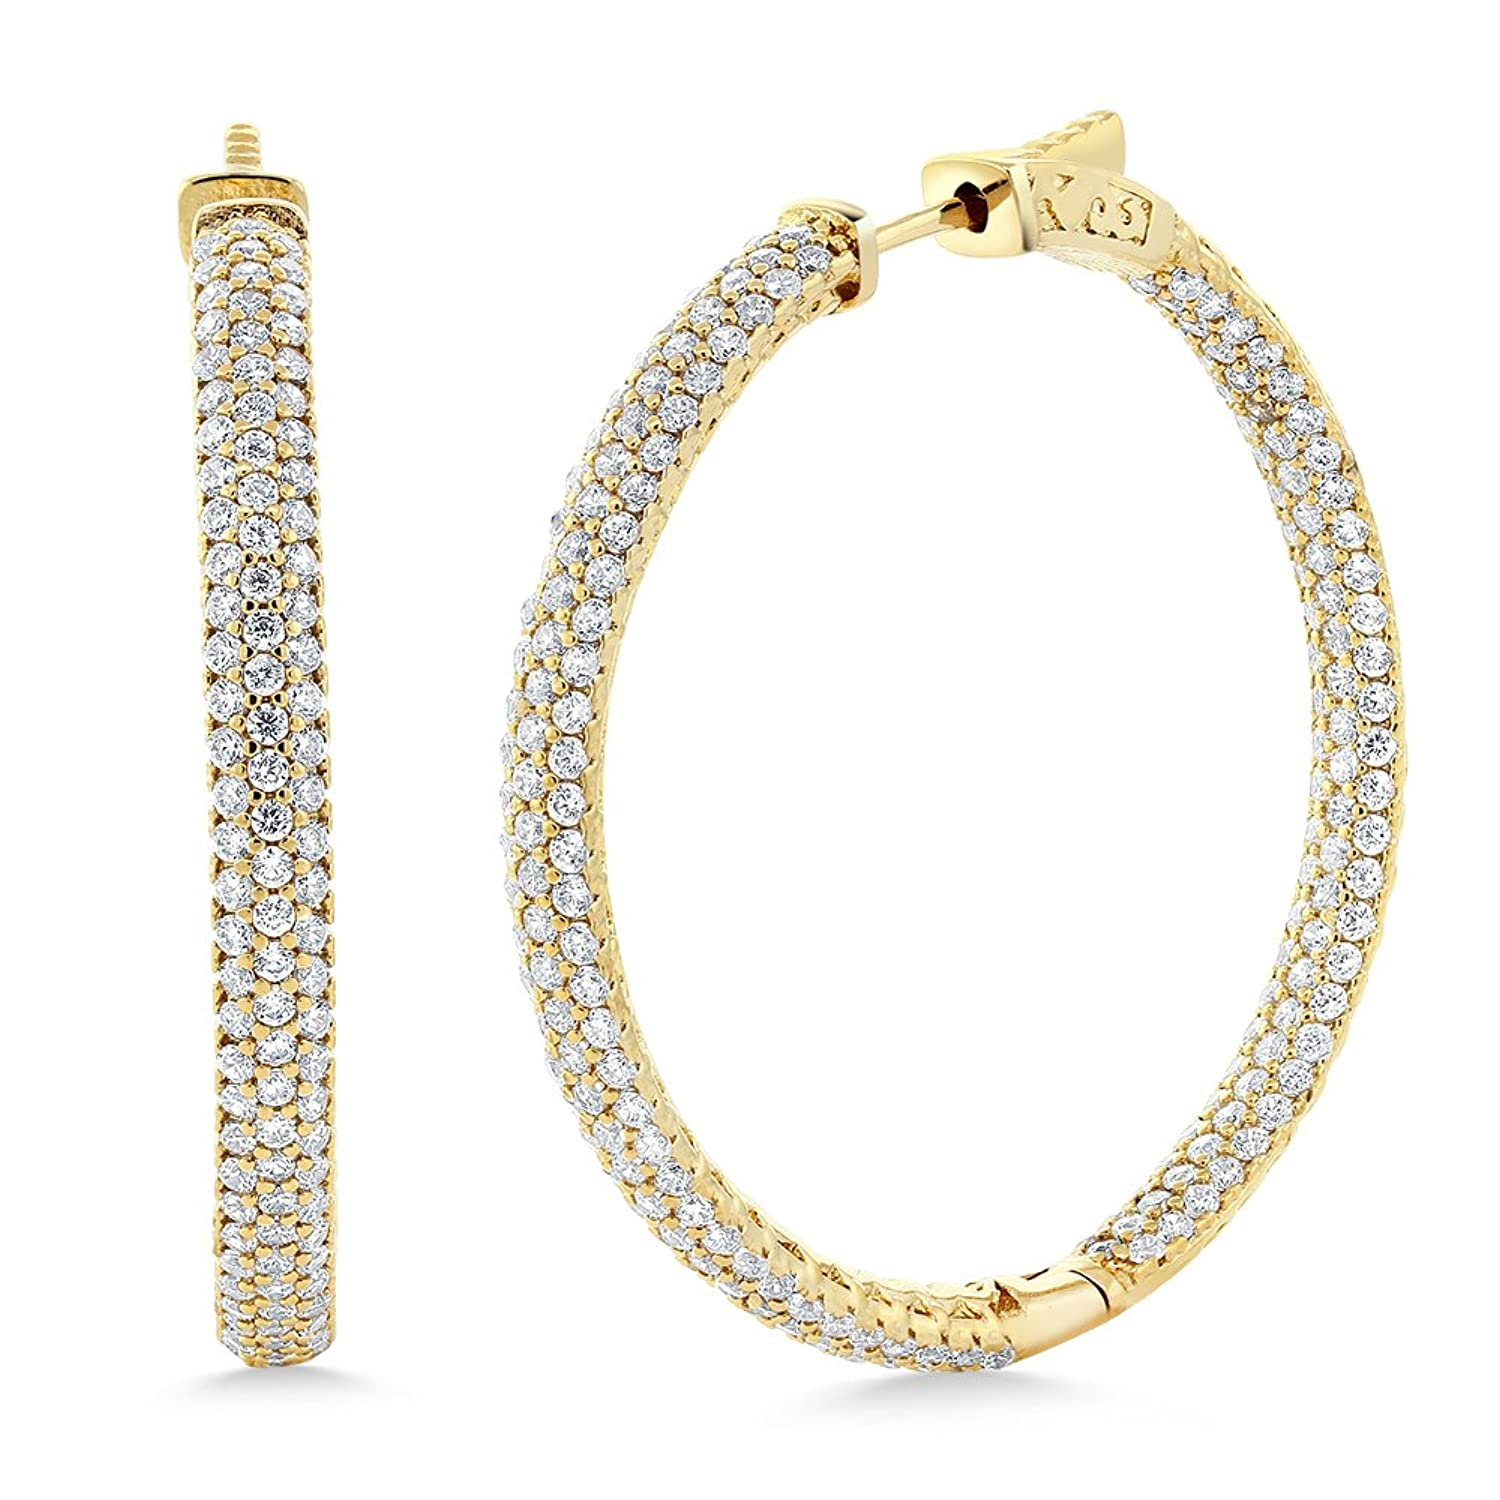 Stunning 18K Yellow Gold Plated CZ Pave Hoop Earrings (35mm = 1.5 Inch)